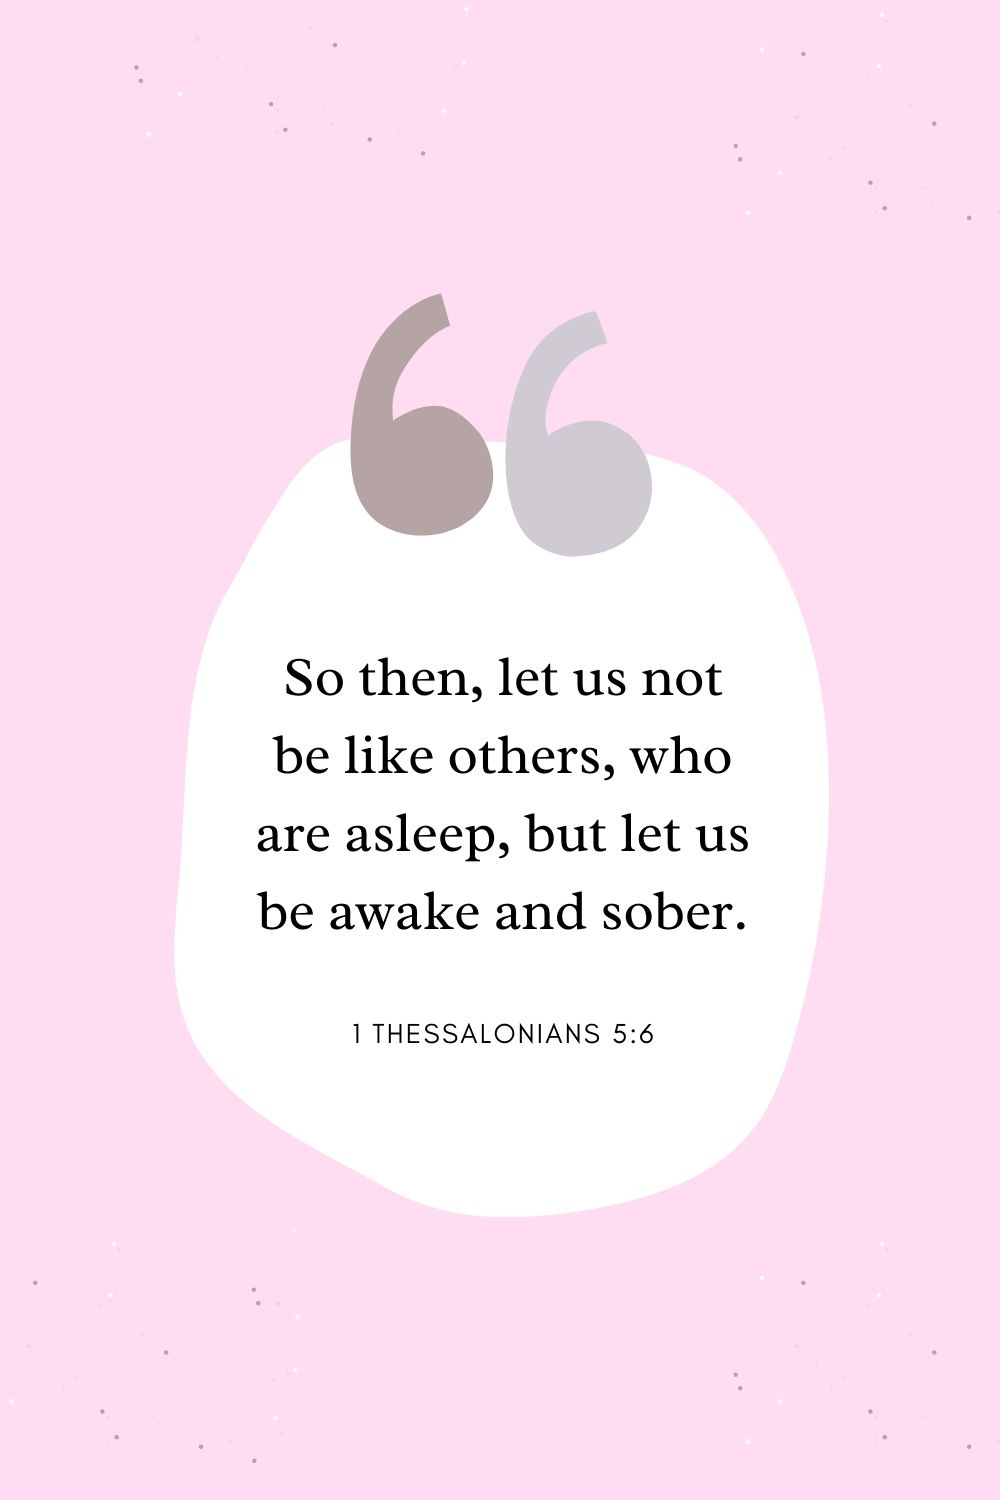 So then, let us not be like others, who are asleep, but let us be awake and sober. 1 Thessalonians 5:6